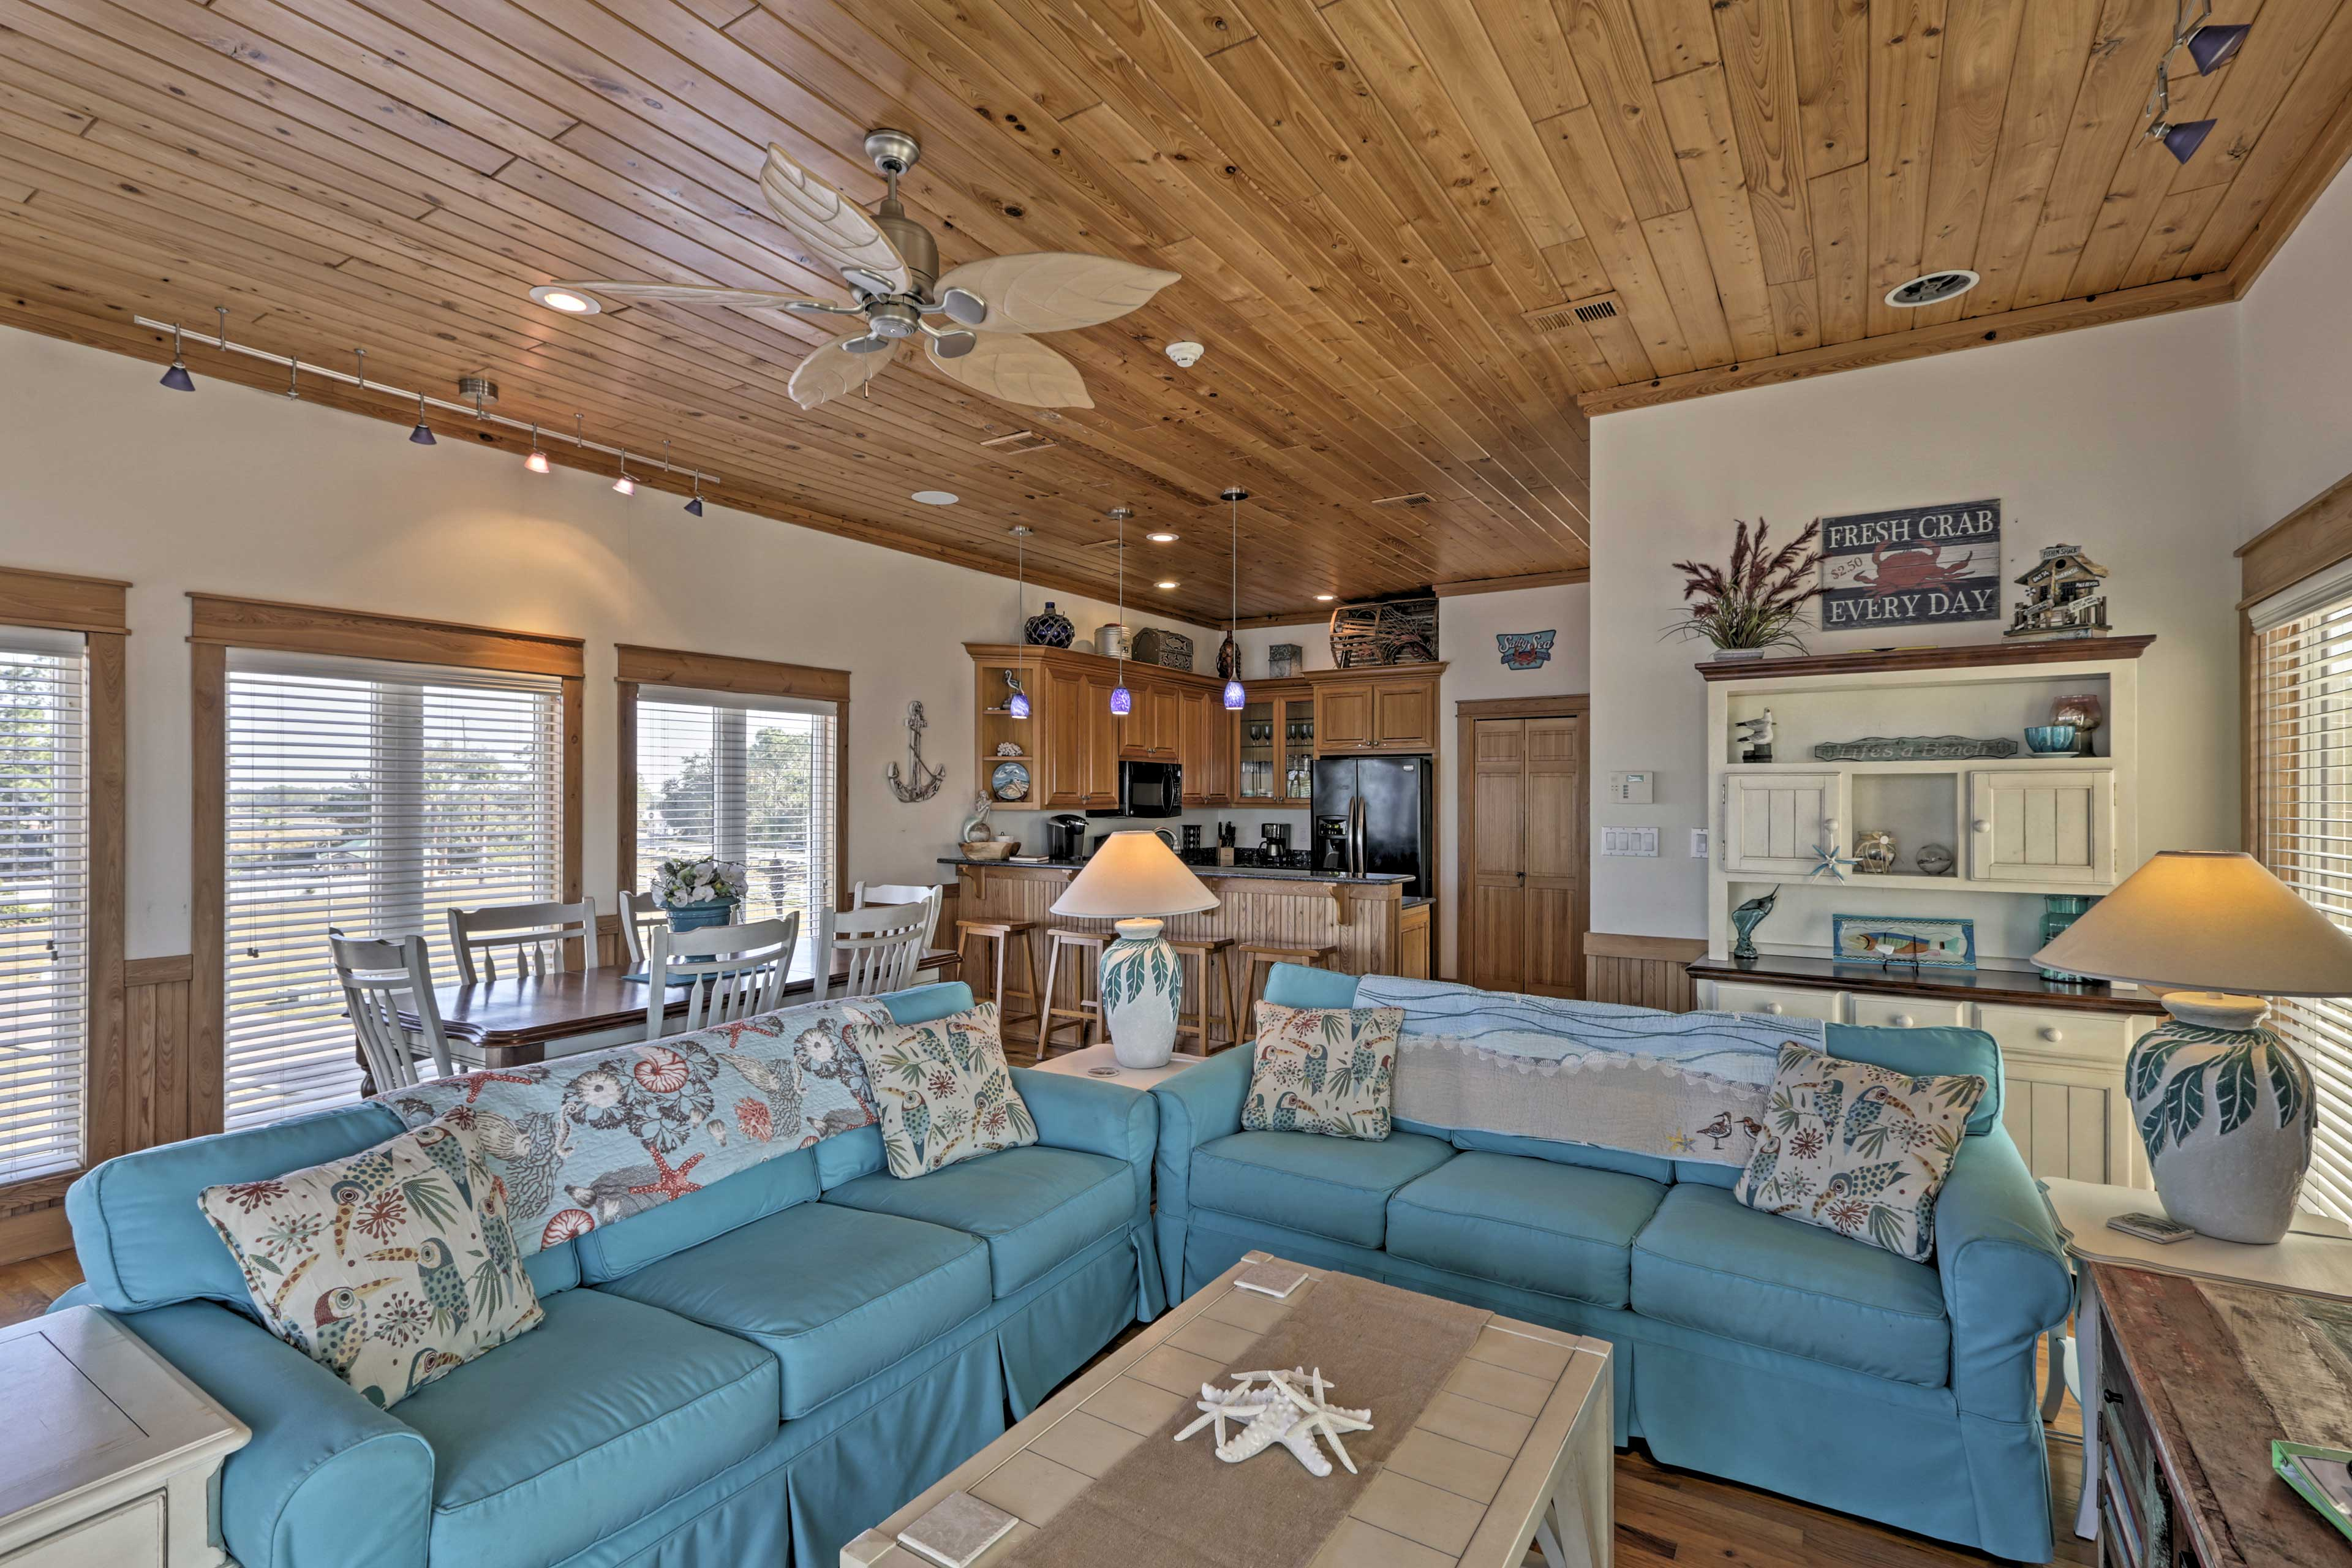 This home boasts over 2,000 square feet of well-designed living space!